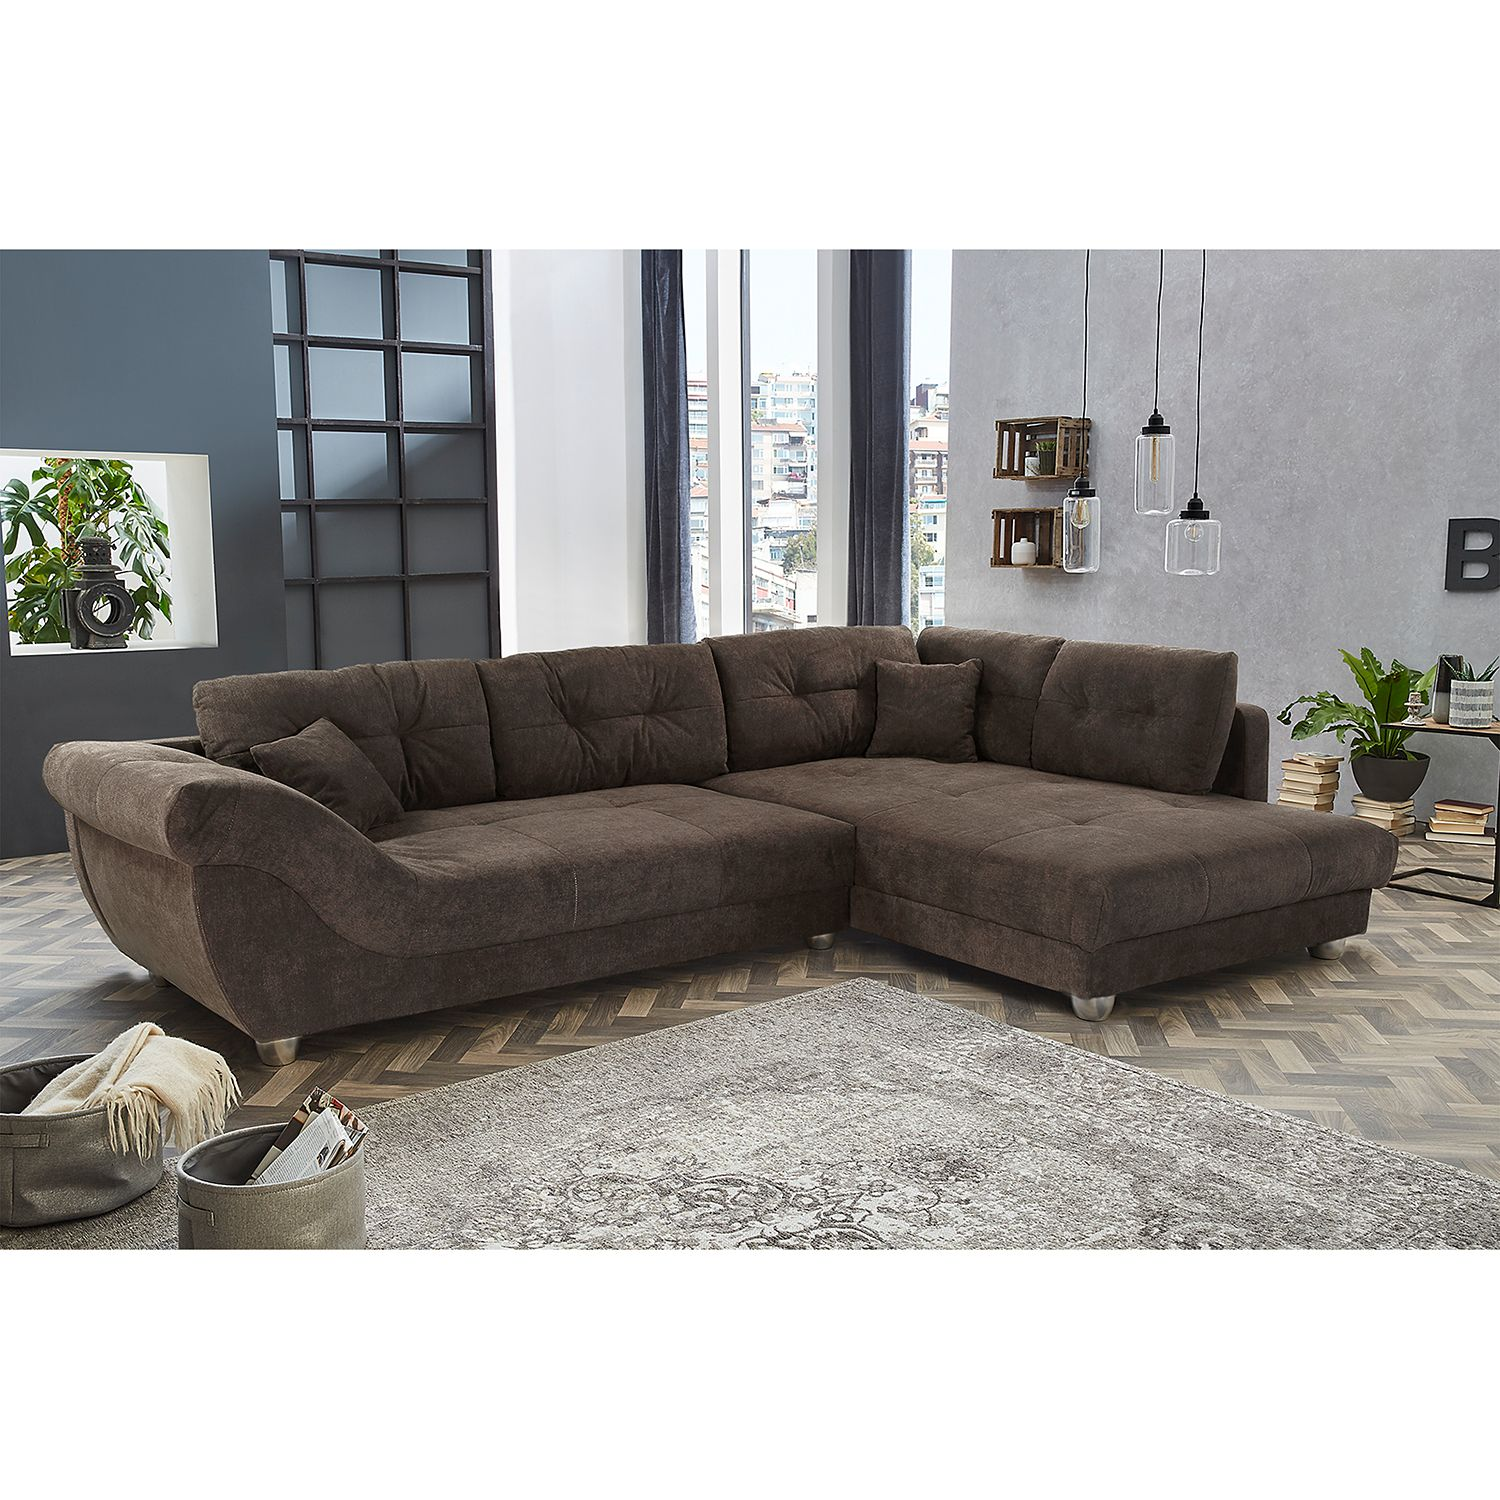 home24 Ecksofa Kagel